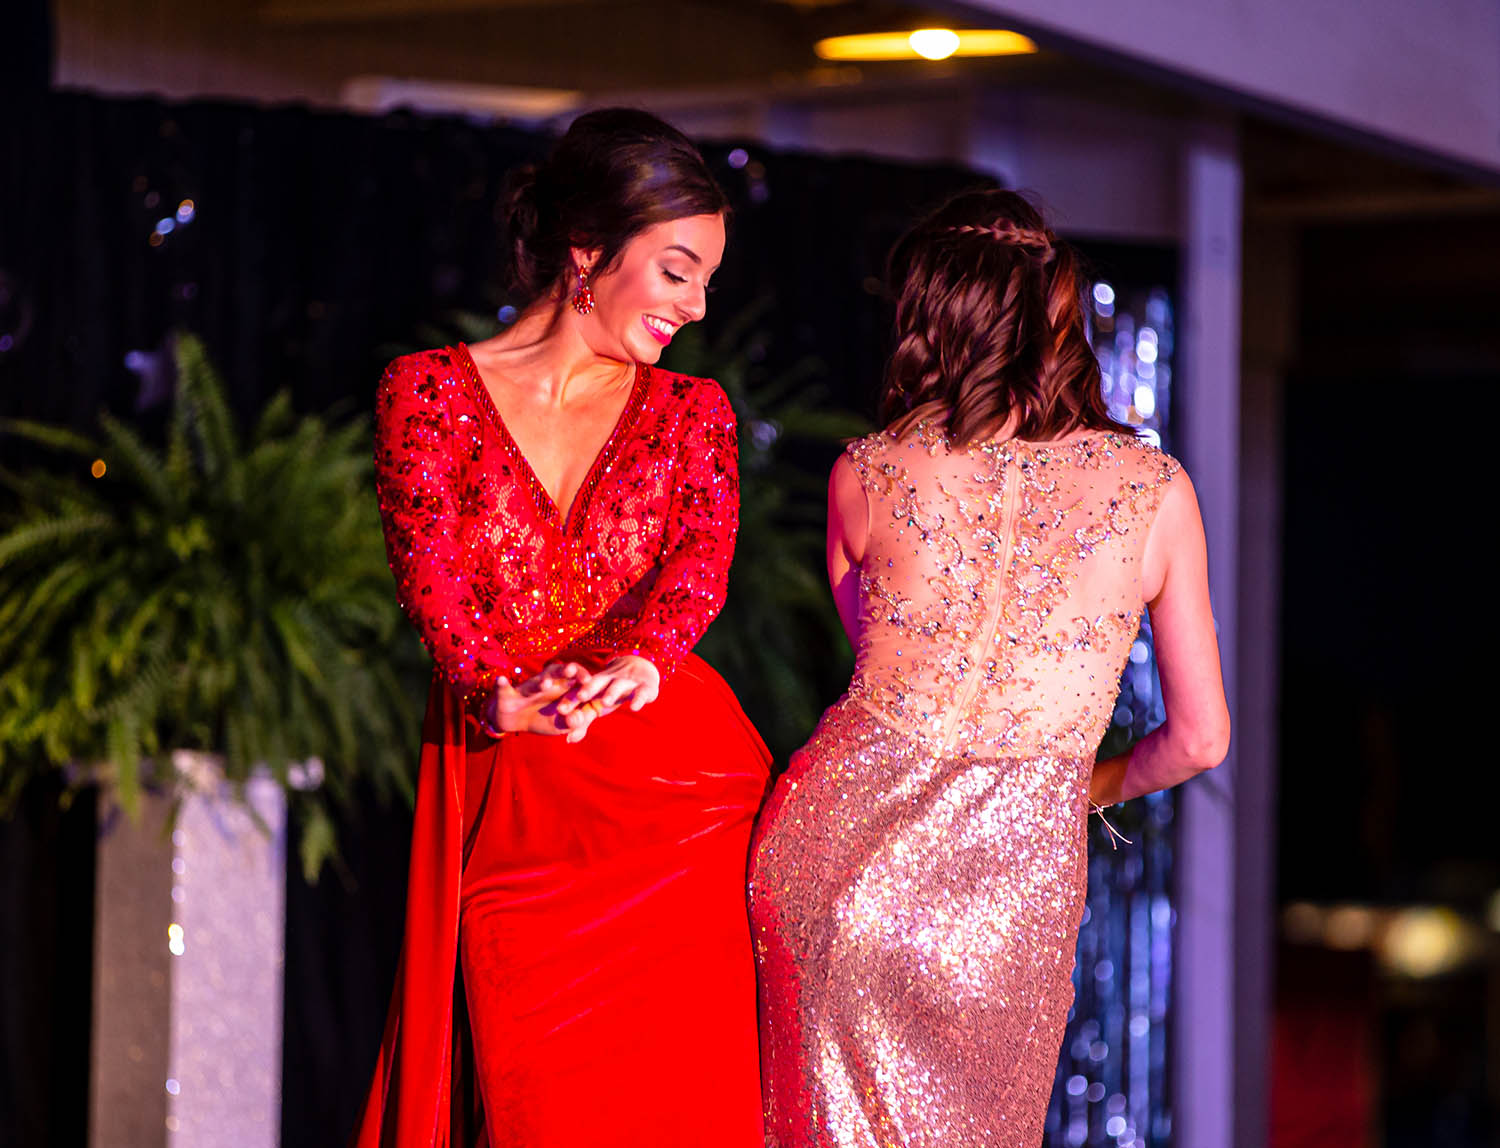 Savannah Norris and Elizabeth Moose bump hips as they make the final walk in the Grand March during the 61st annual Sangamon County Fair Queen Pageant at the Sangamon County Fairgrounds, Tuesday, June 11, 2019, in New Berlin, Ill. [Justin L. Fowler/The State Journal-Register]